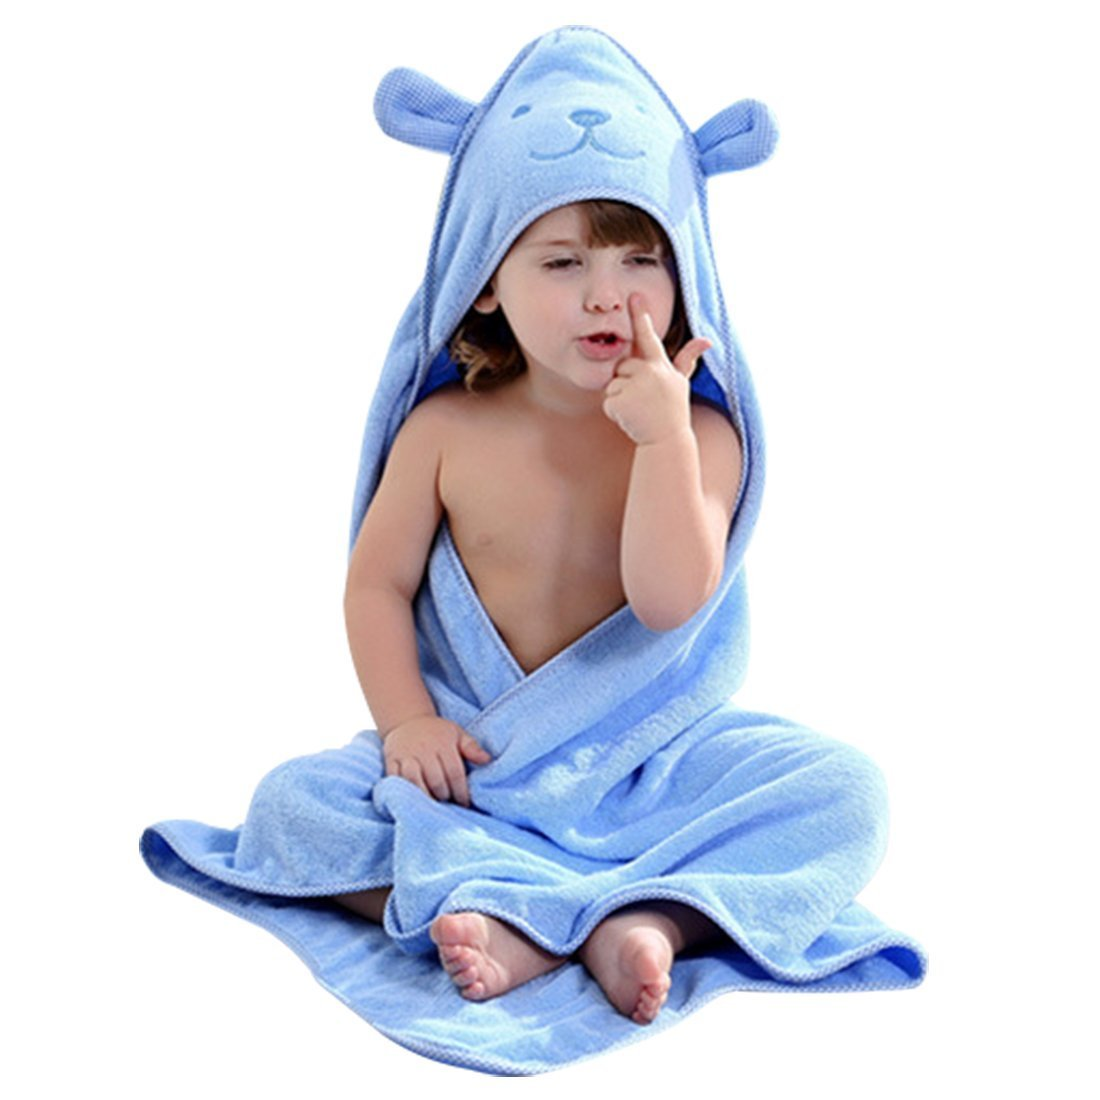 Baby Hooded Towel with Bear Ear- Soft and Thick 100% Cotton Bath Set for Girls, Boys, Infant ad Toddler, Good Choice (Blue)